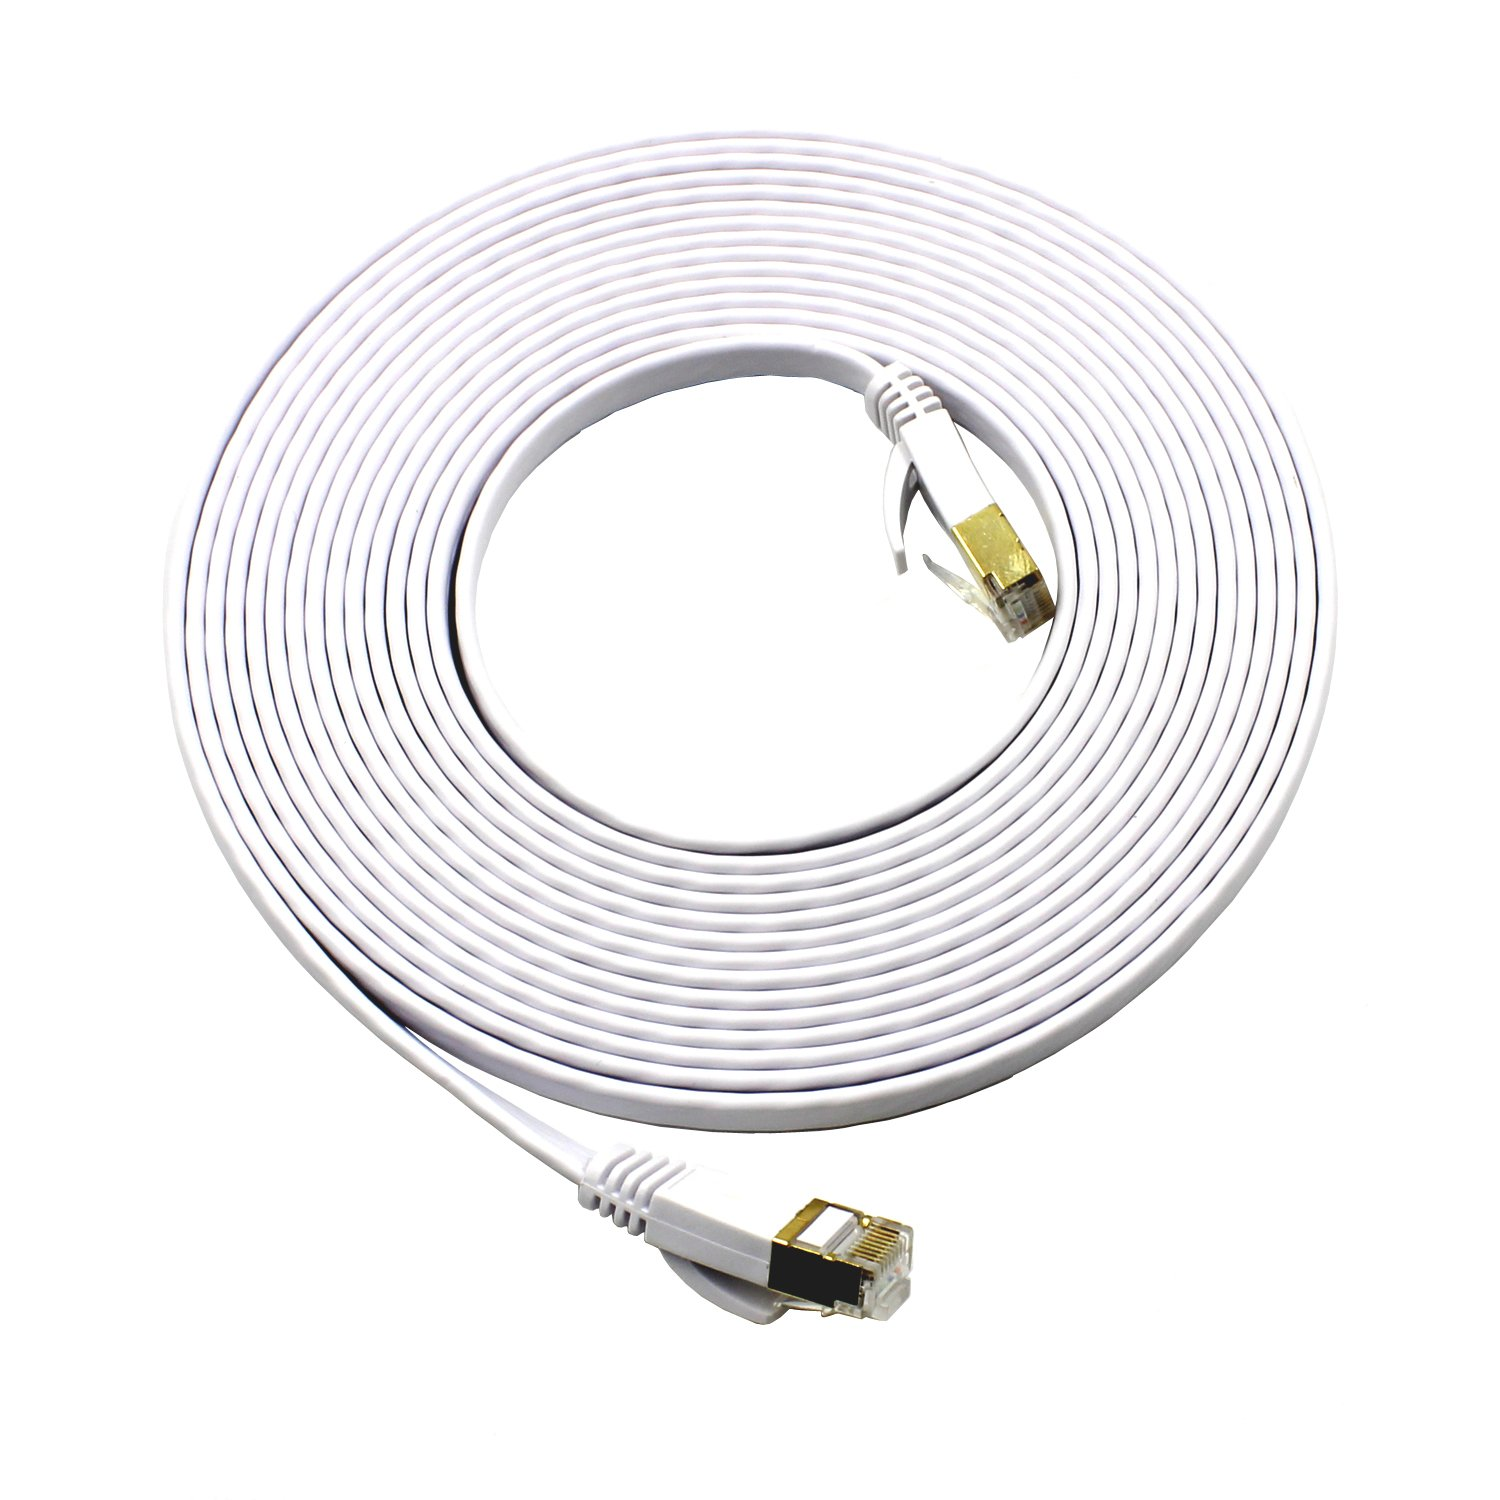 amazon mcsher cat7 ethernet patch network cable shielded stp Shielded Cat5e Connectors amazon mcsher cat7 ethernet patch network cable shielded stp copper lan internet wire with gold plated rj45 connectors white 16ft puters